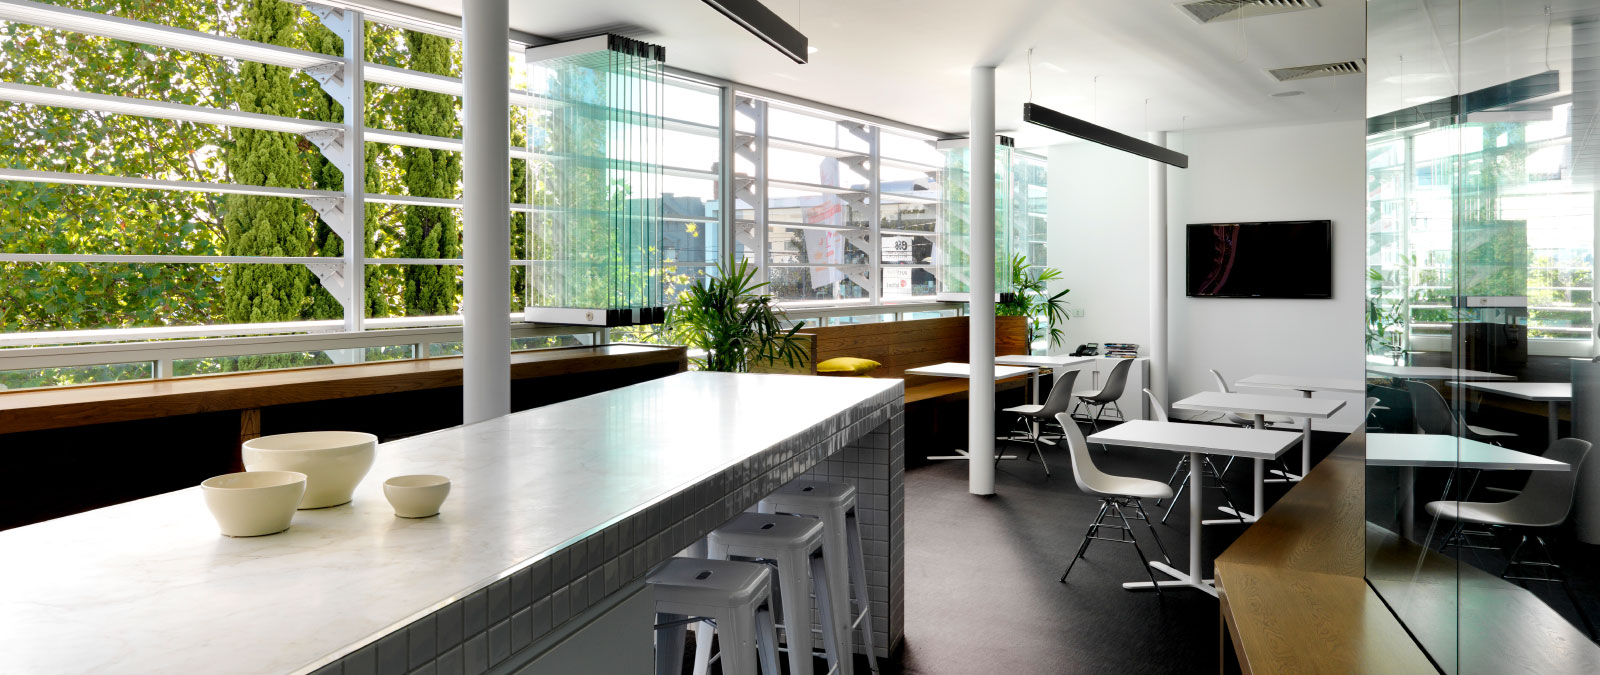 H2o Architects Melbourne-Kane Constructions Melbourne Office-03